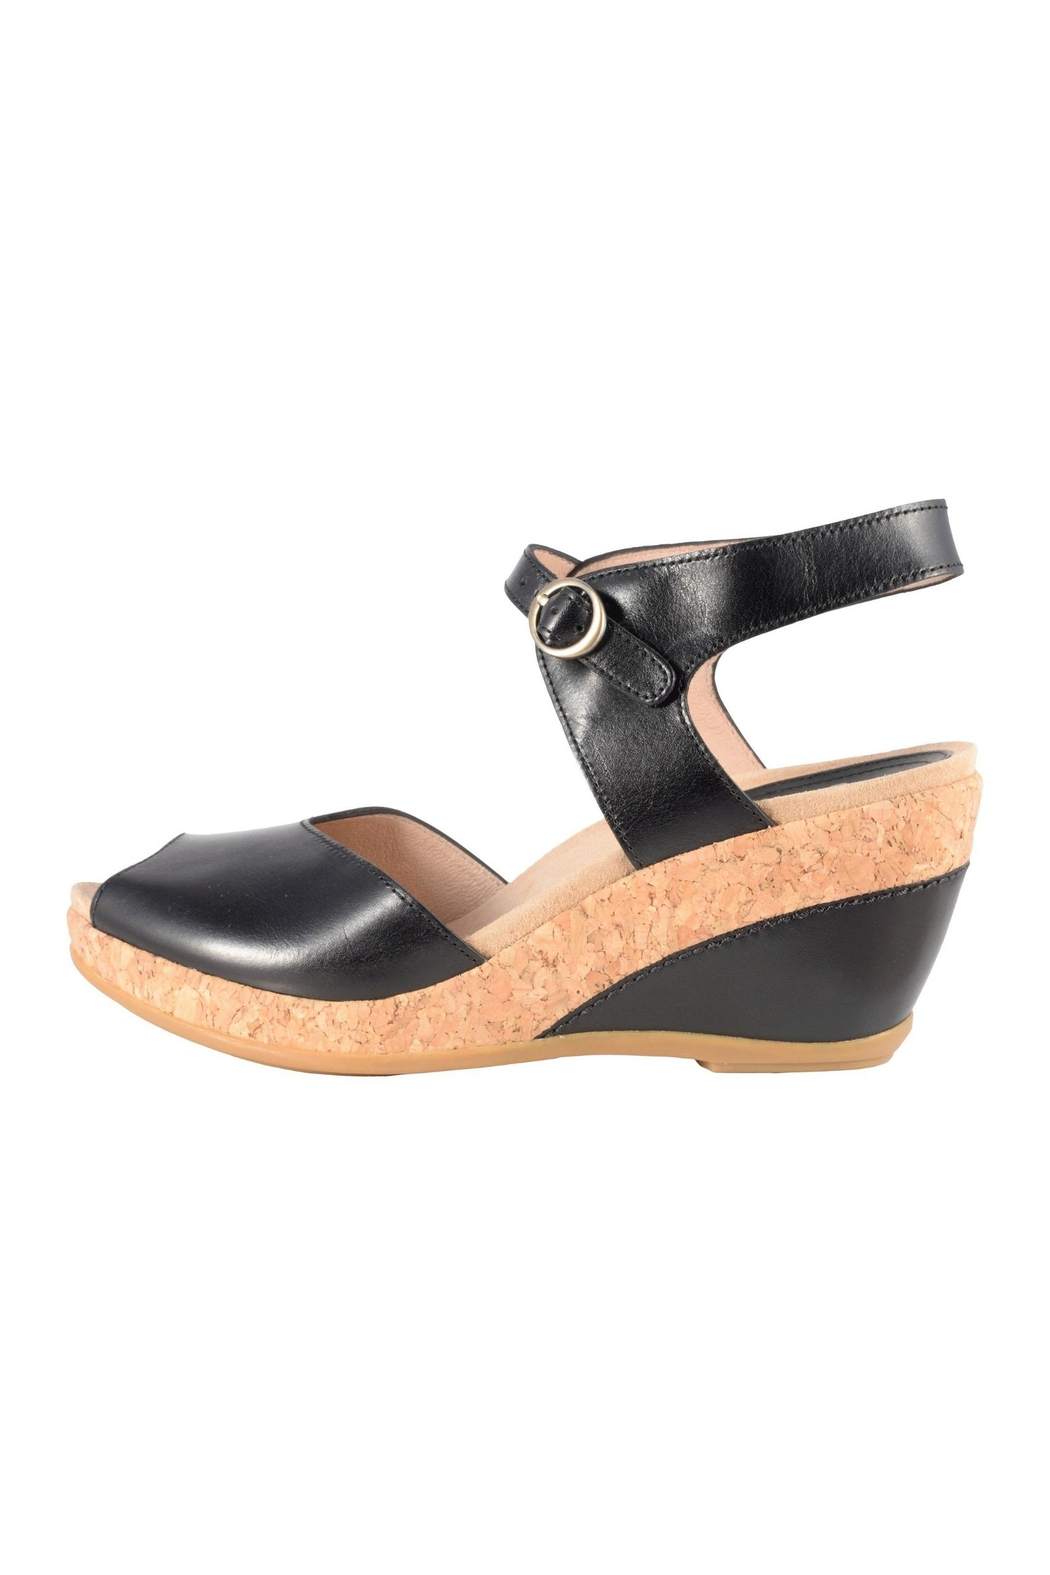 Dansko Charlotte Wedge - Main Image